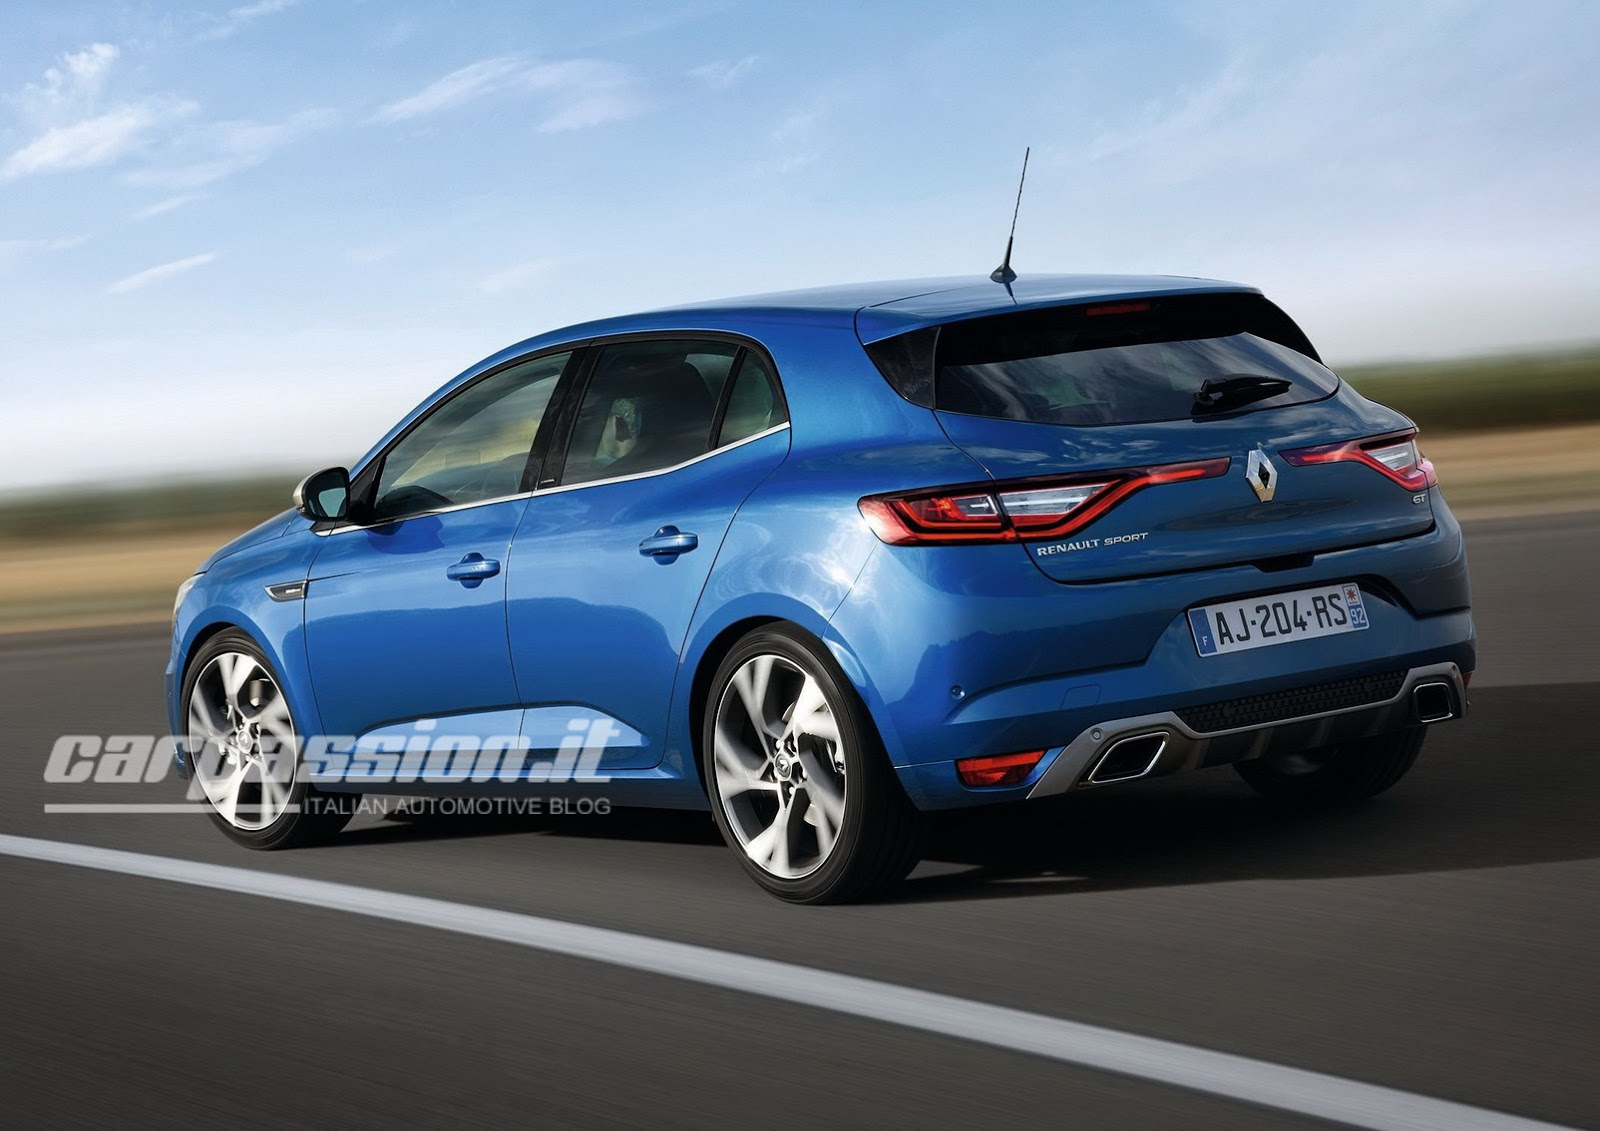 all new 2016 renault megane revealed in official photos. Black Bedroom Furniture Sets. Home Design Ideas